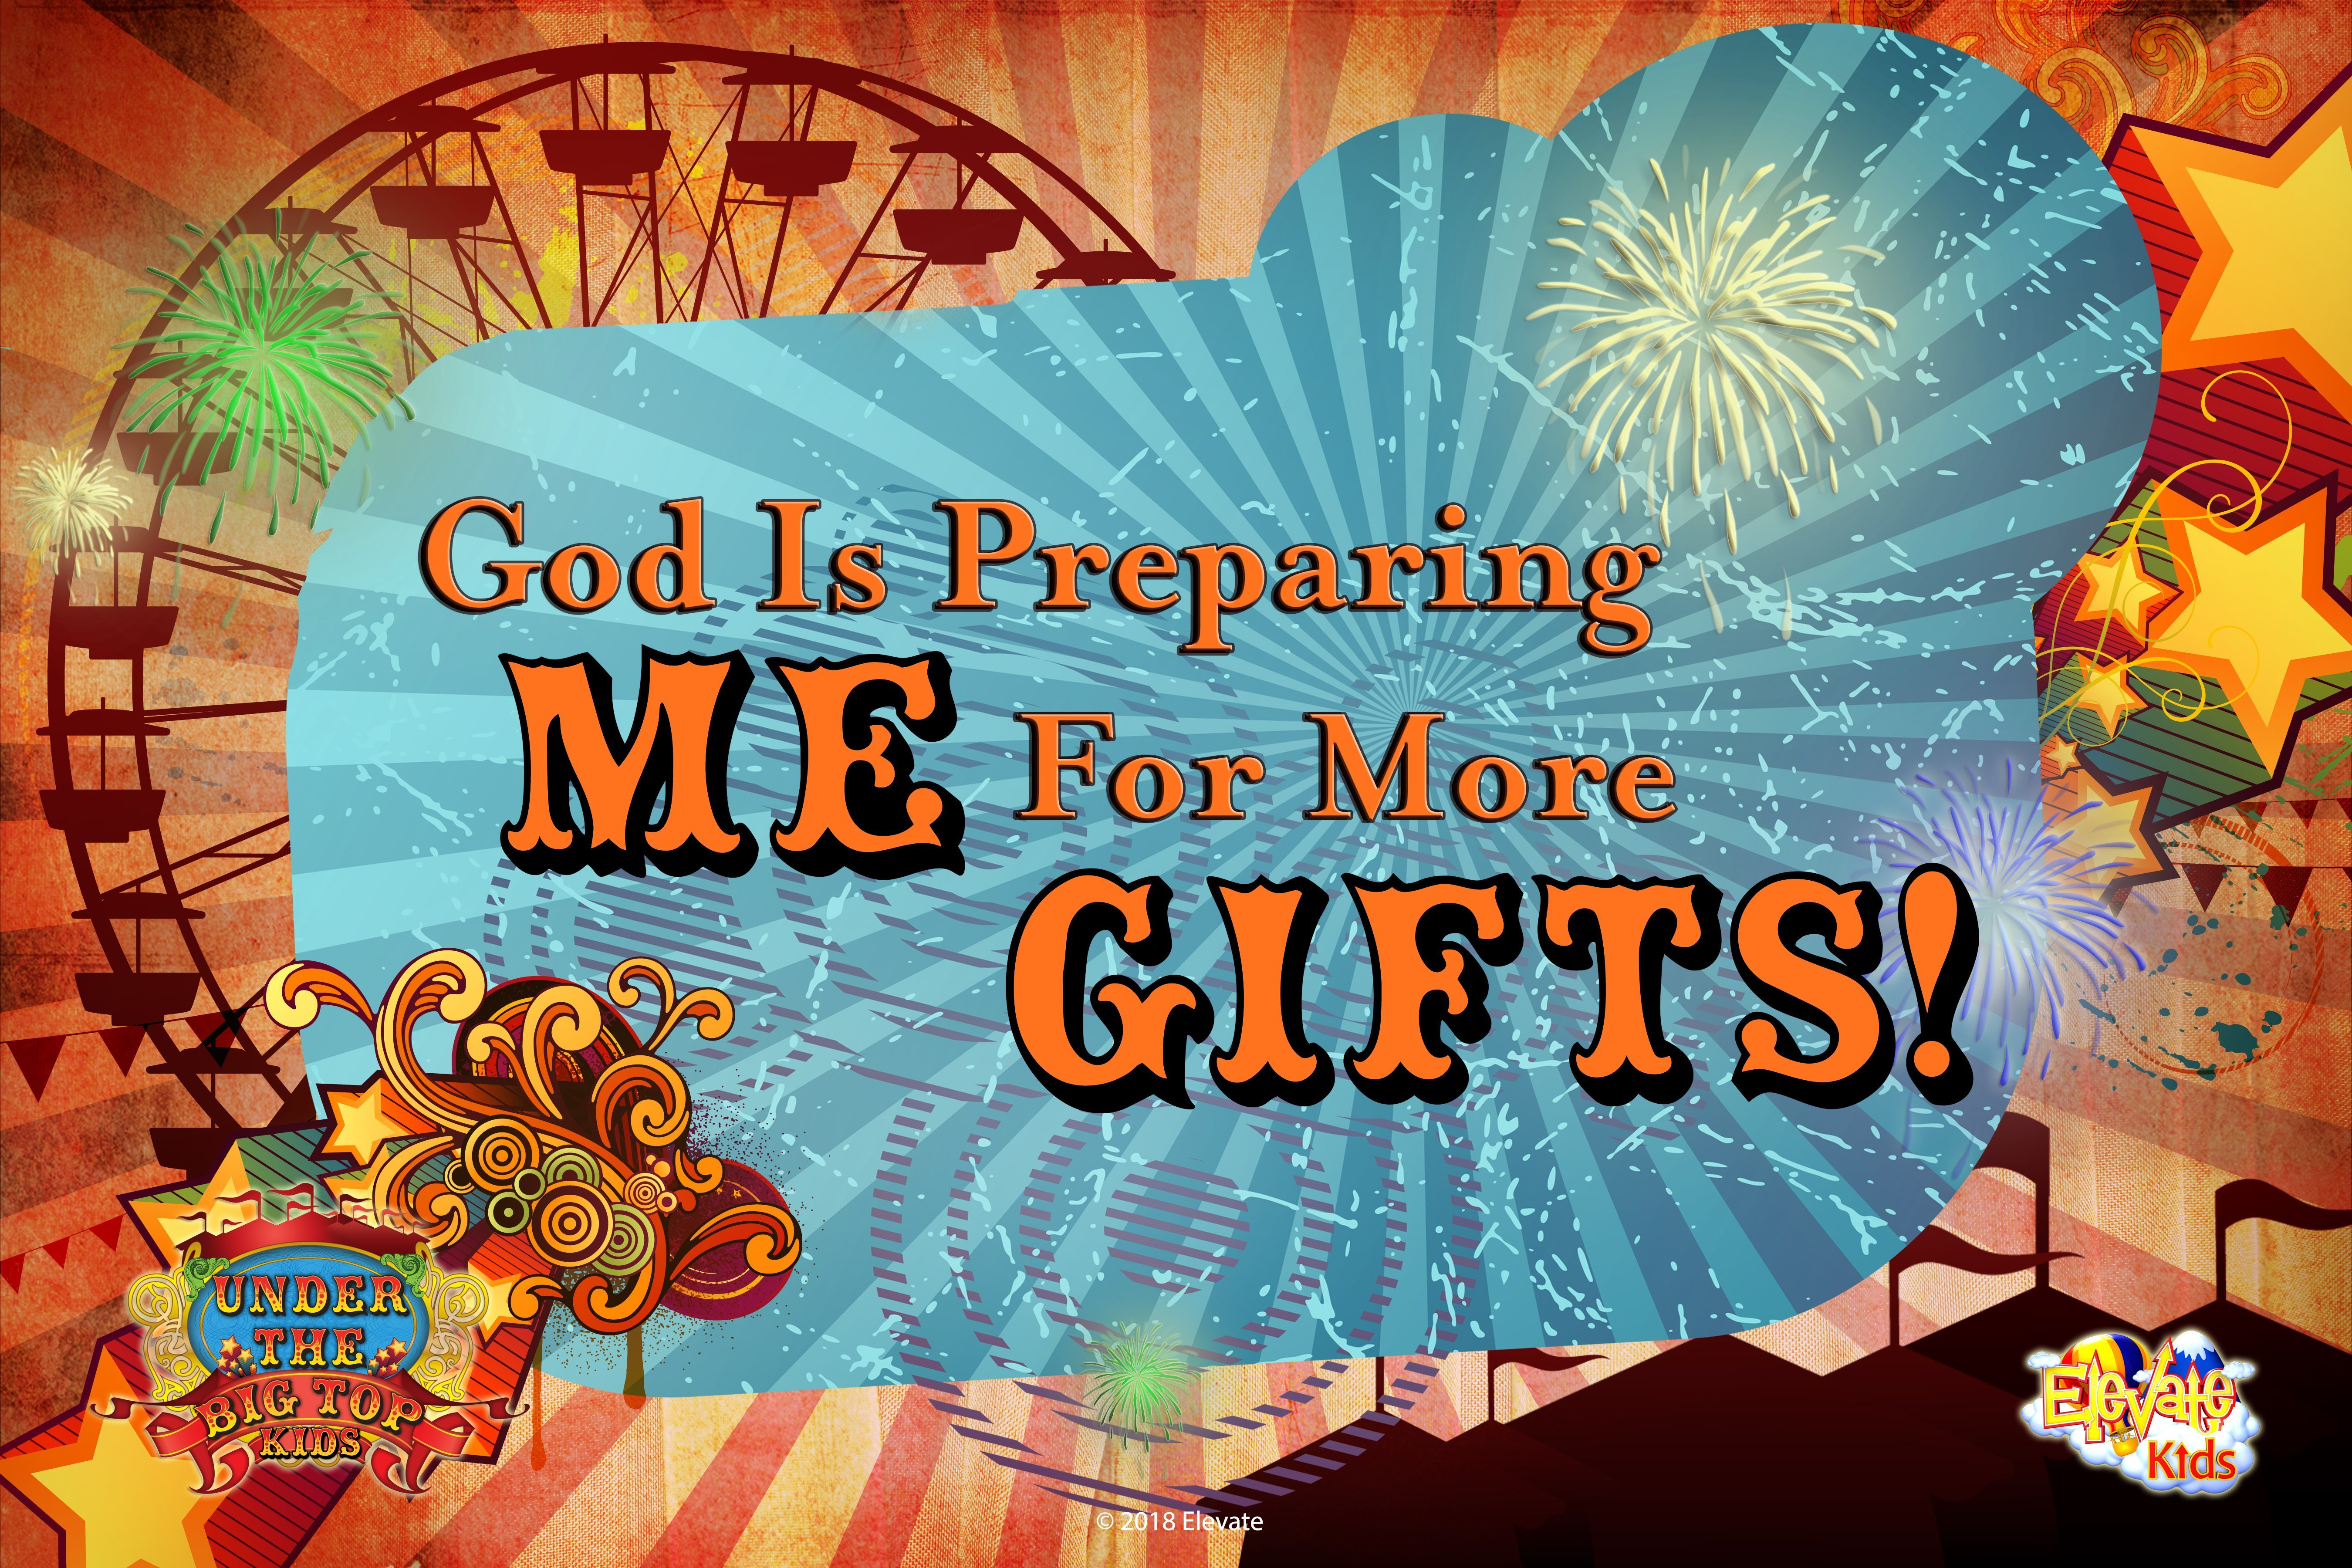 Oct. 28 | 9:30am | God is Preparing Me for More Gifts!